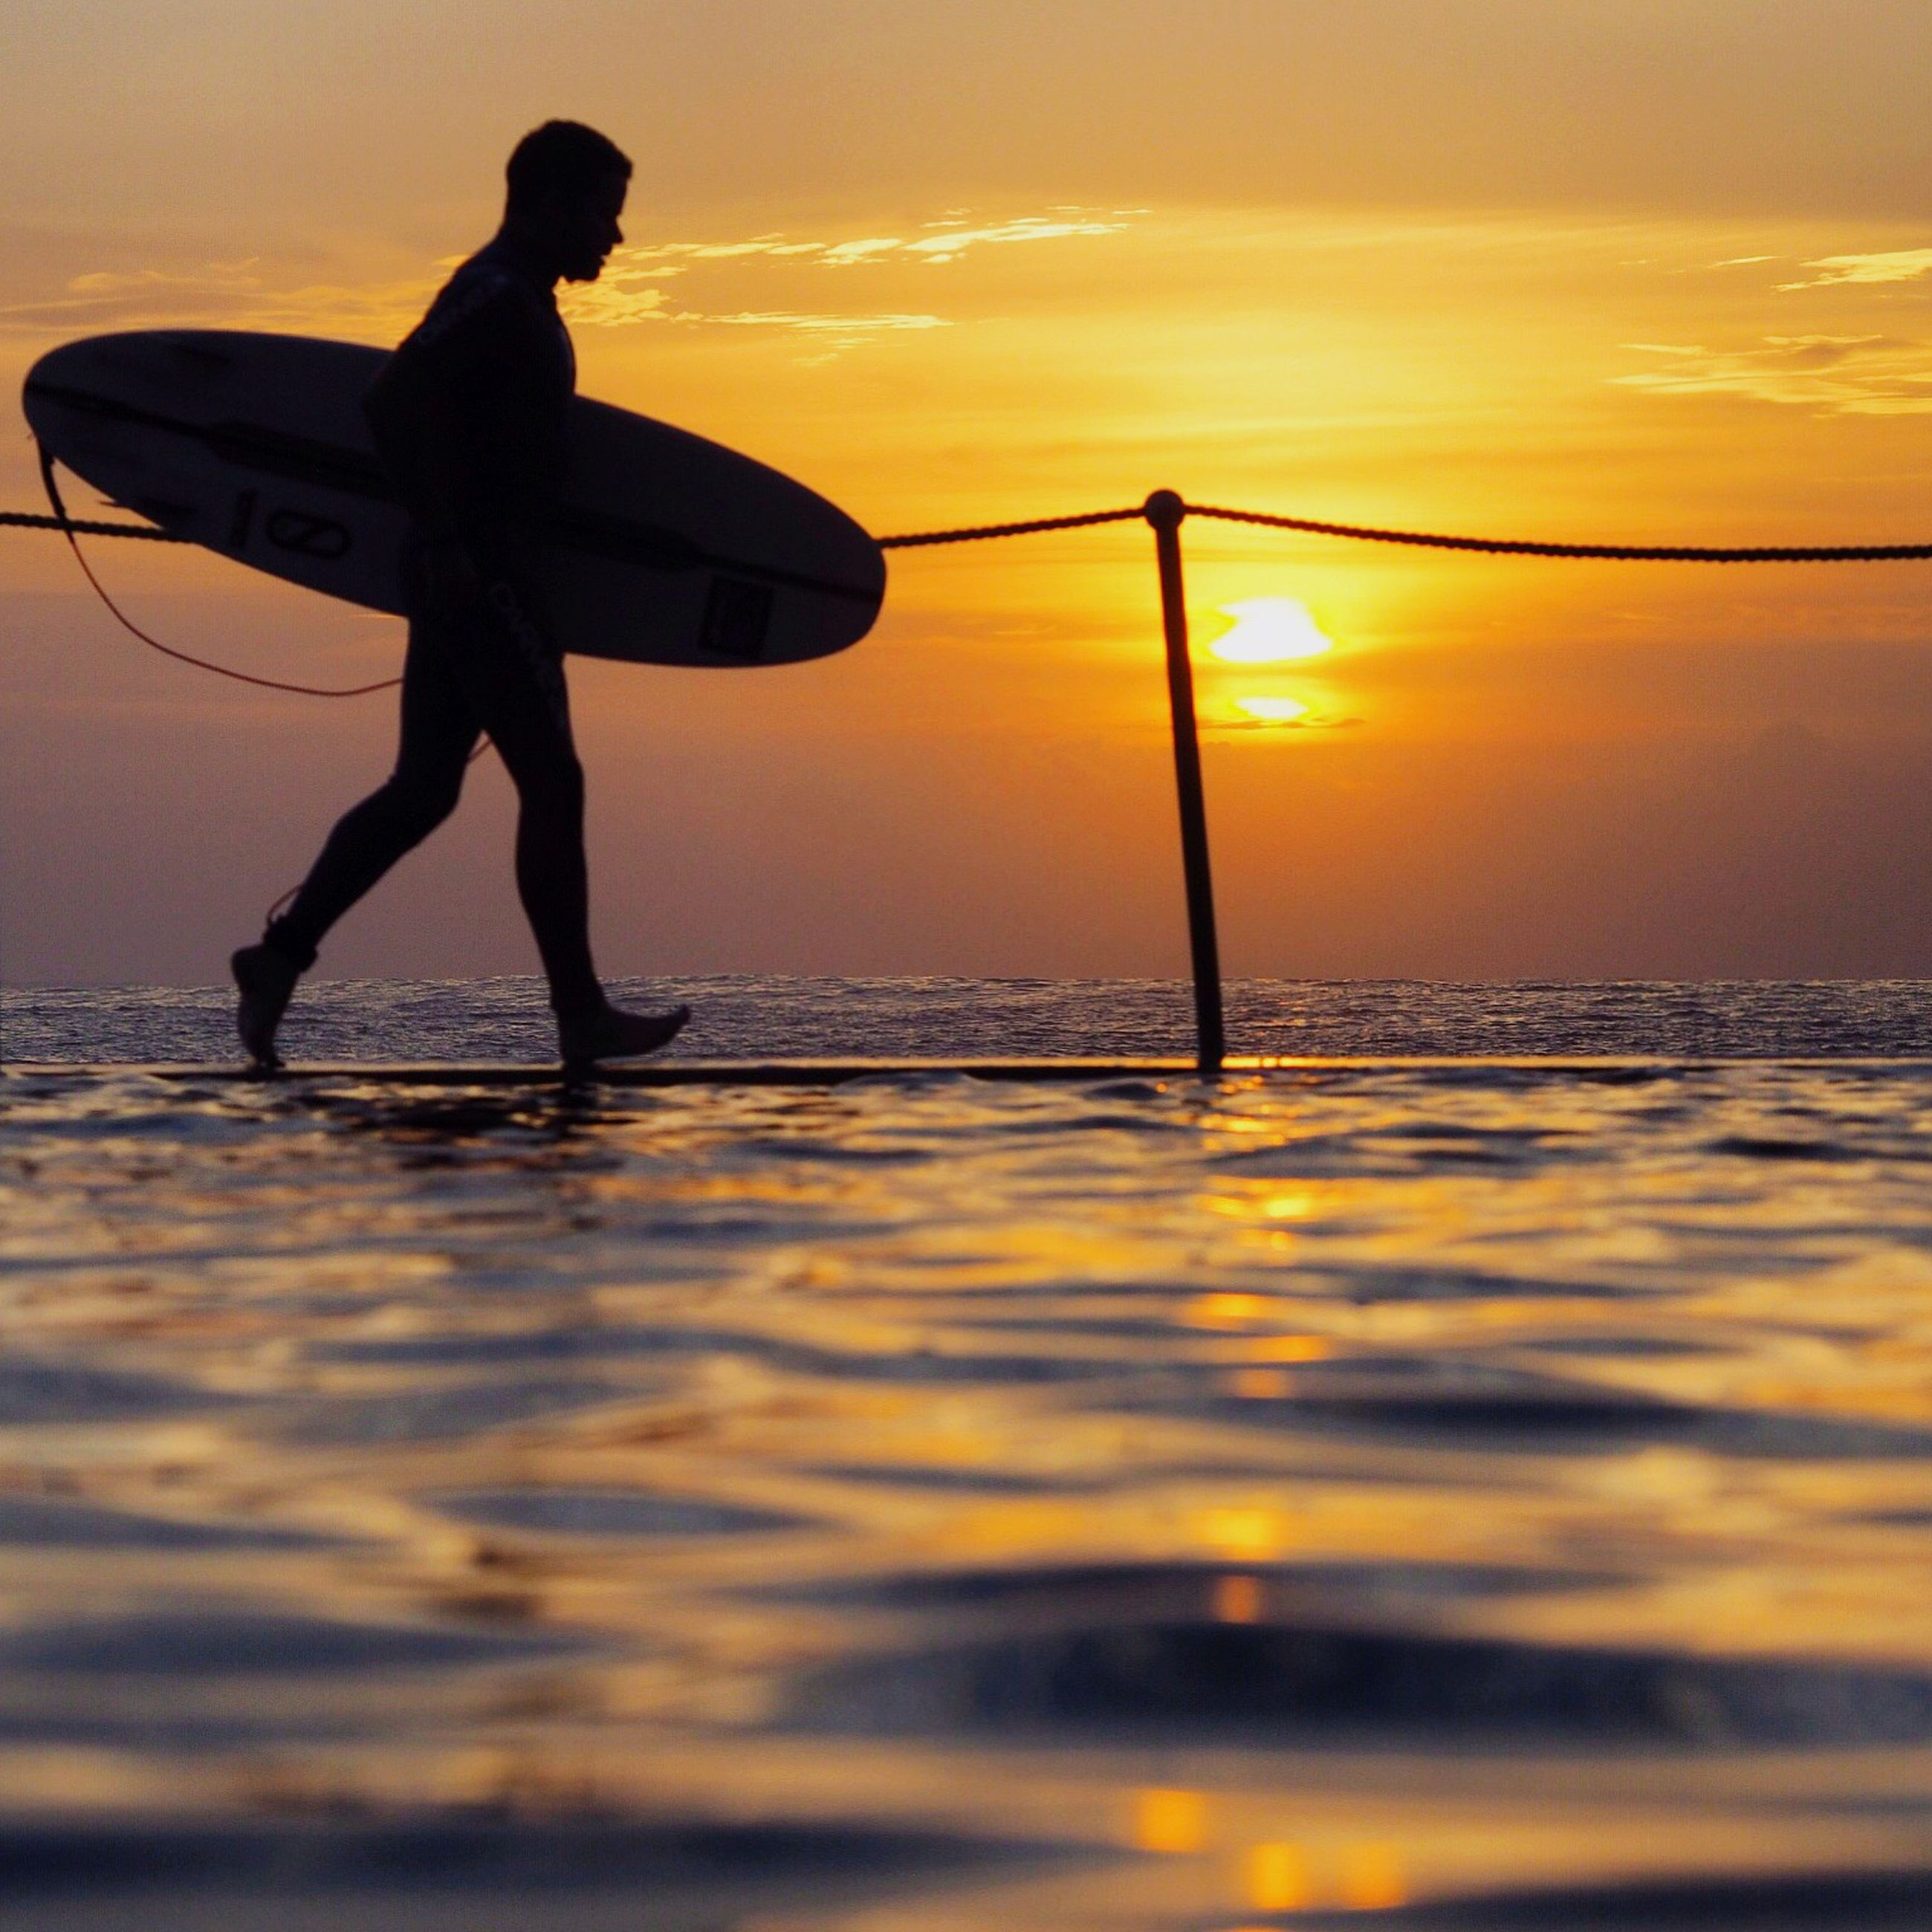 sunset, sea, water, scenics, sun, horizon over water, idyllic, silhouette, tranquil scene, tranquility, full length, beauty in nature, sky, reflection, motion, nature, orange color, surface level, cloud - sky, remote, dramatic sky, enjoyment, hobbies, vacations, holding, outdoors, fun, majestic, moody sky, carefree, mountain